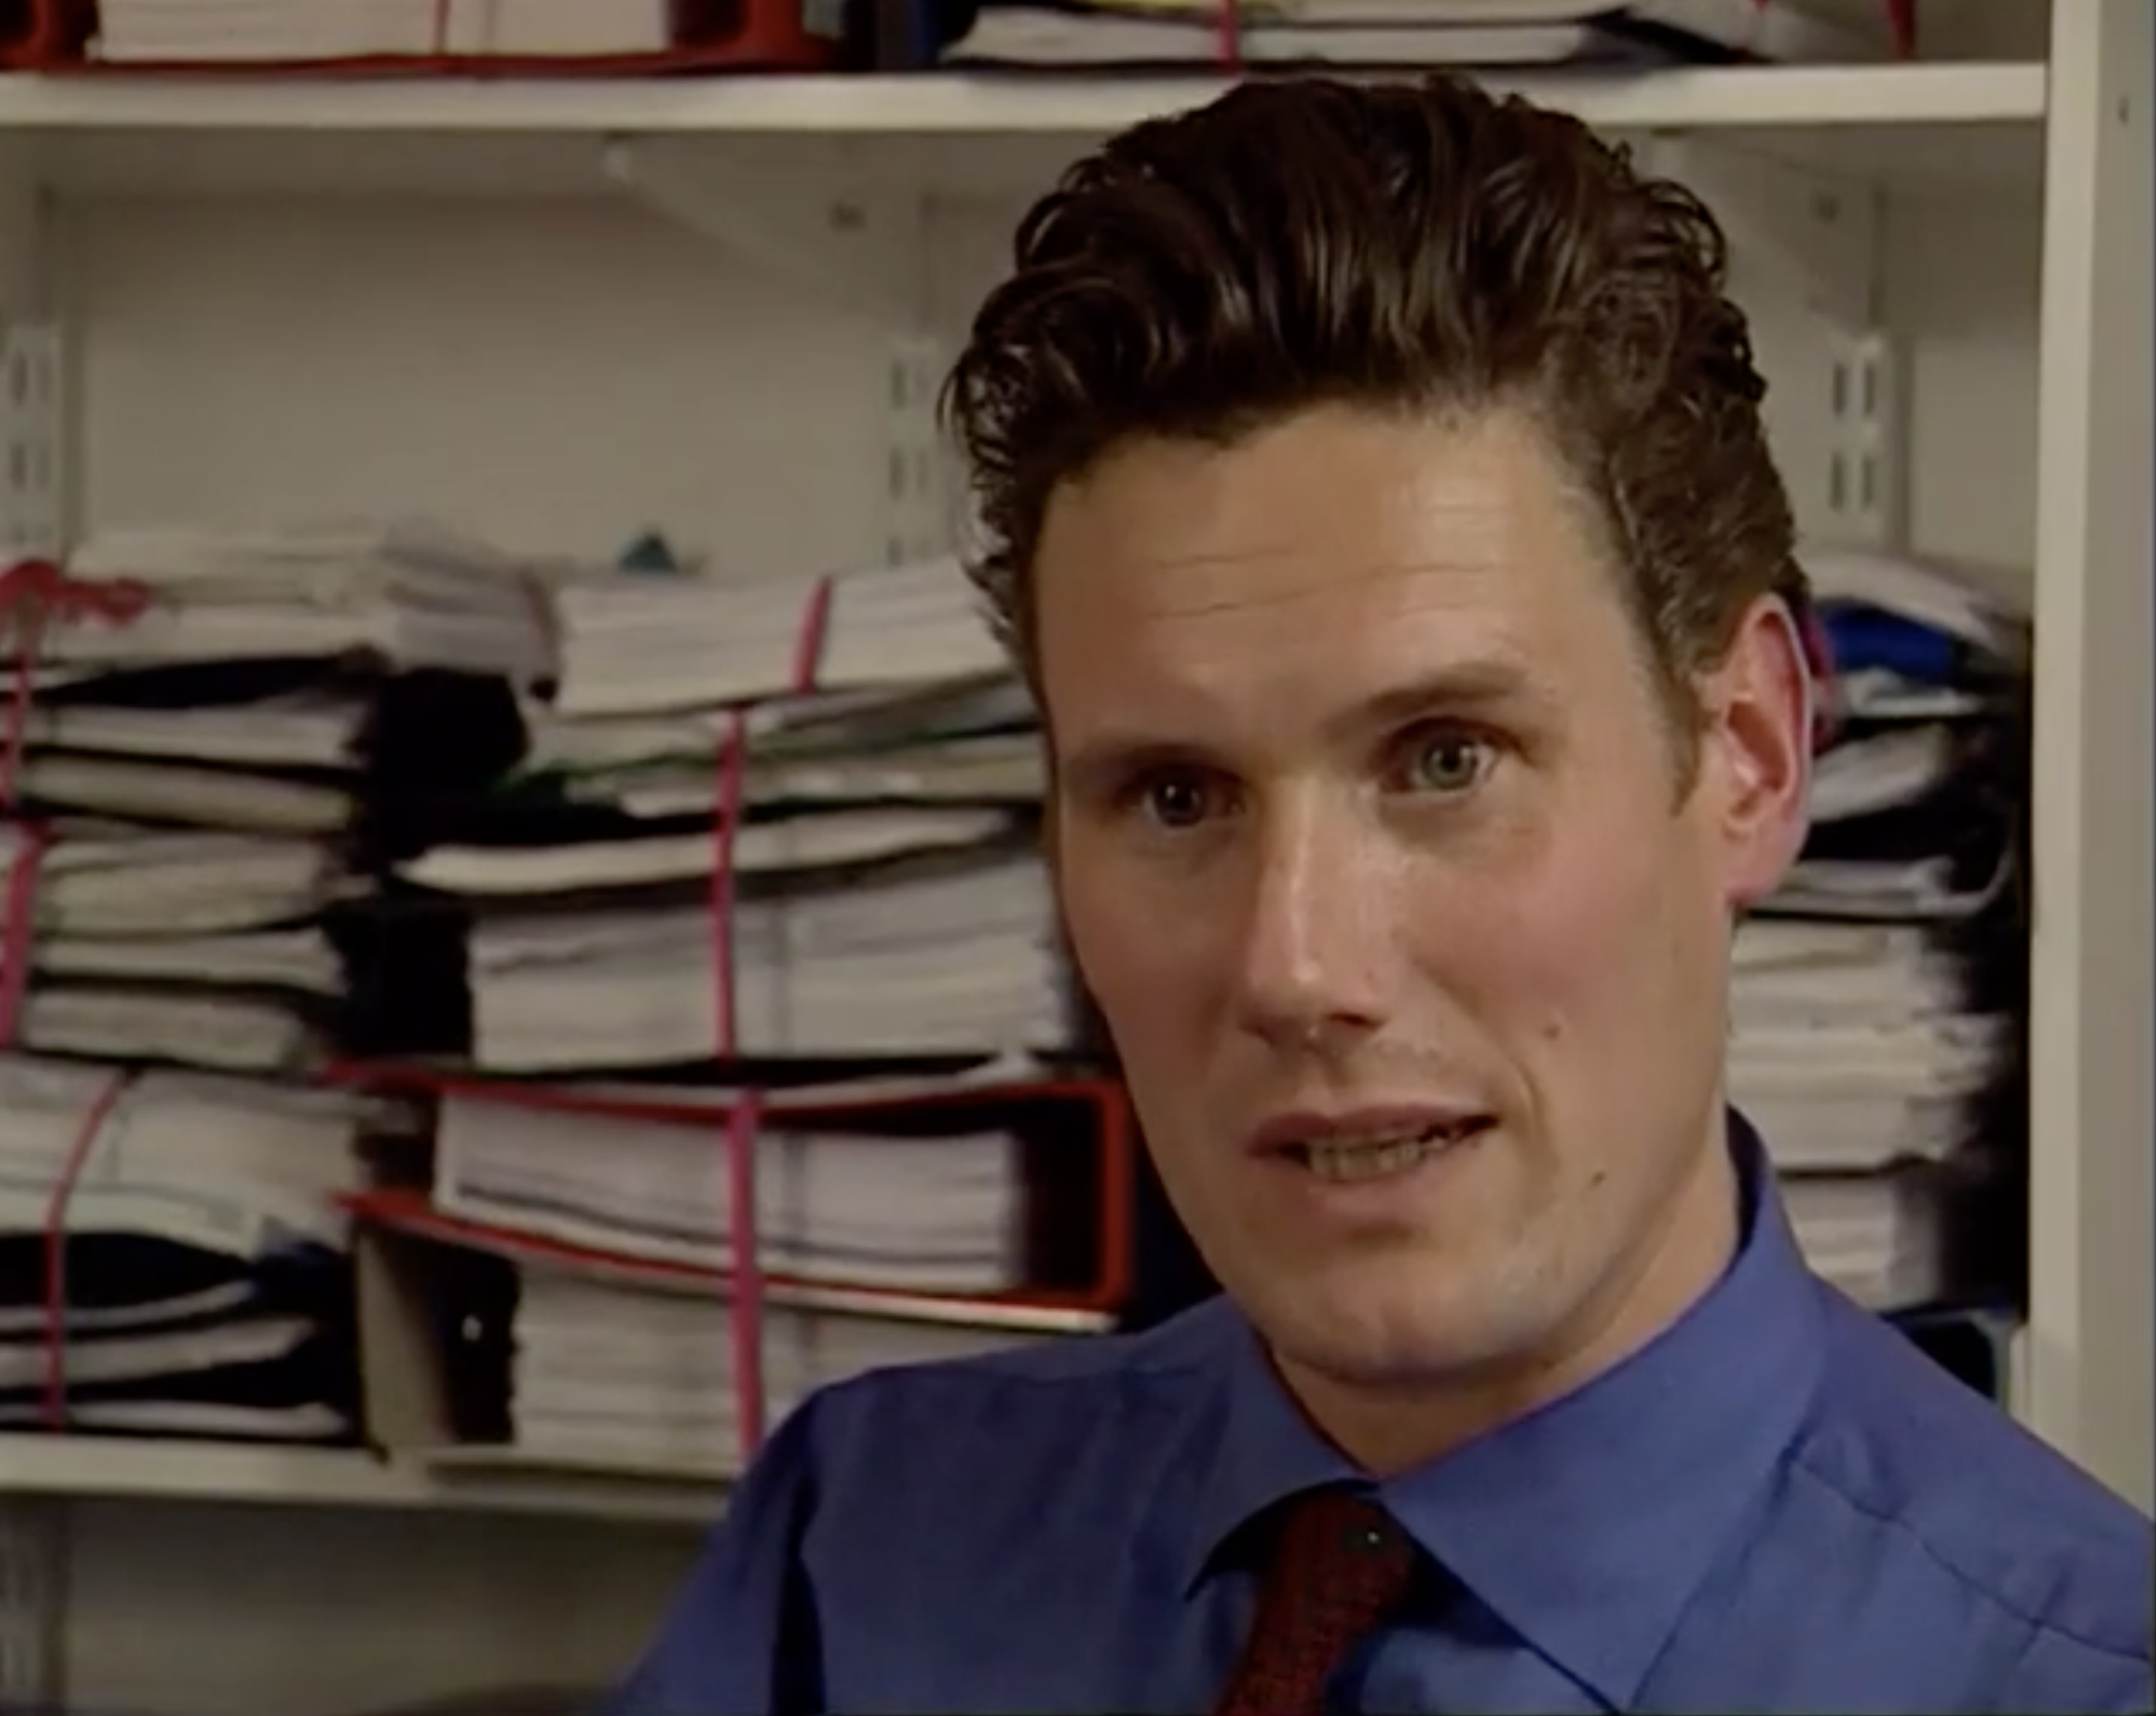 Starmer in the documentary McLibel